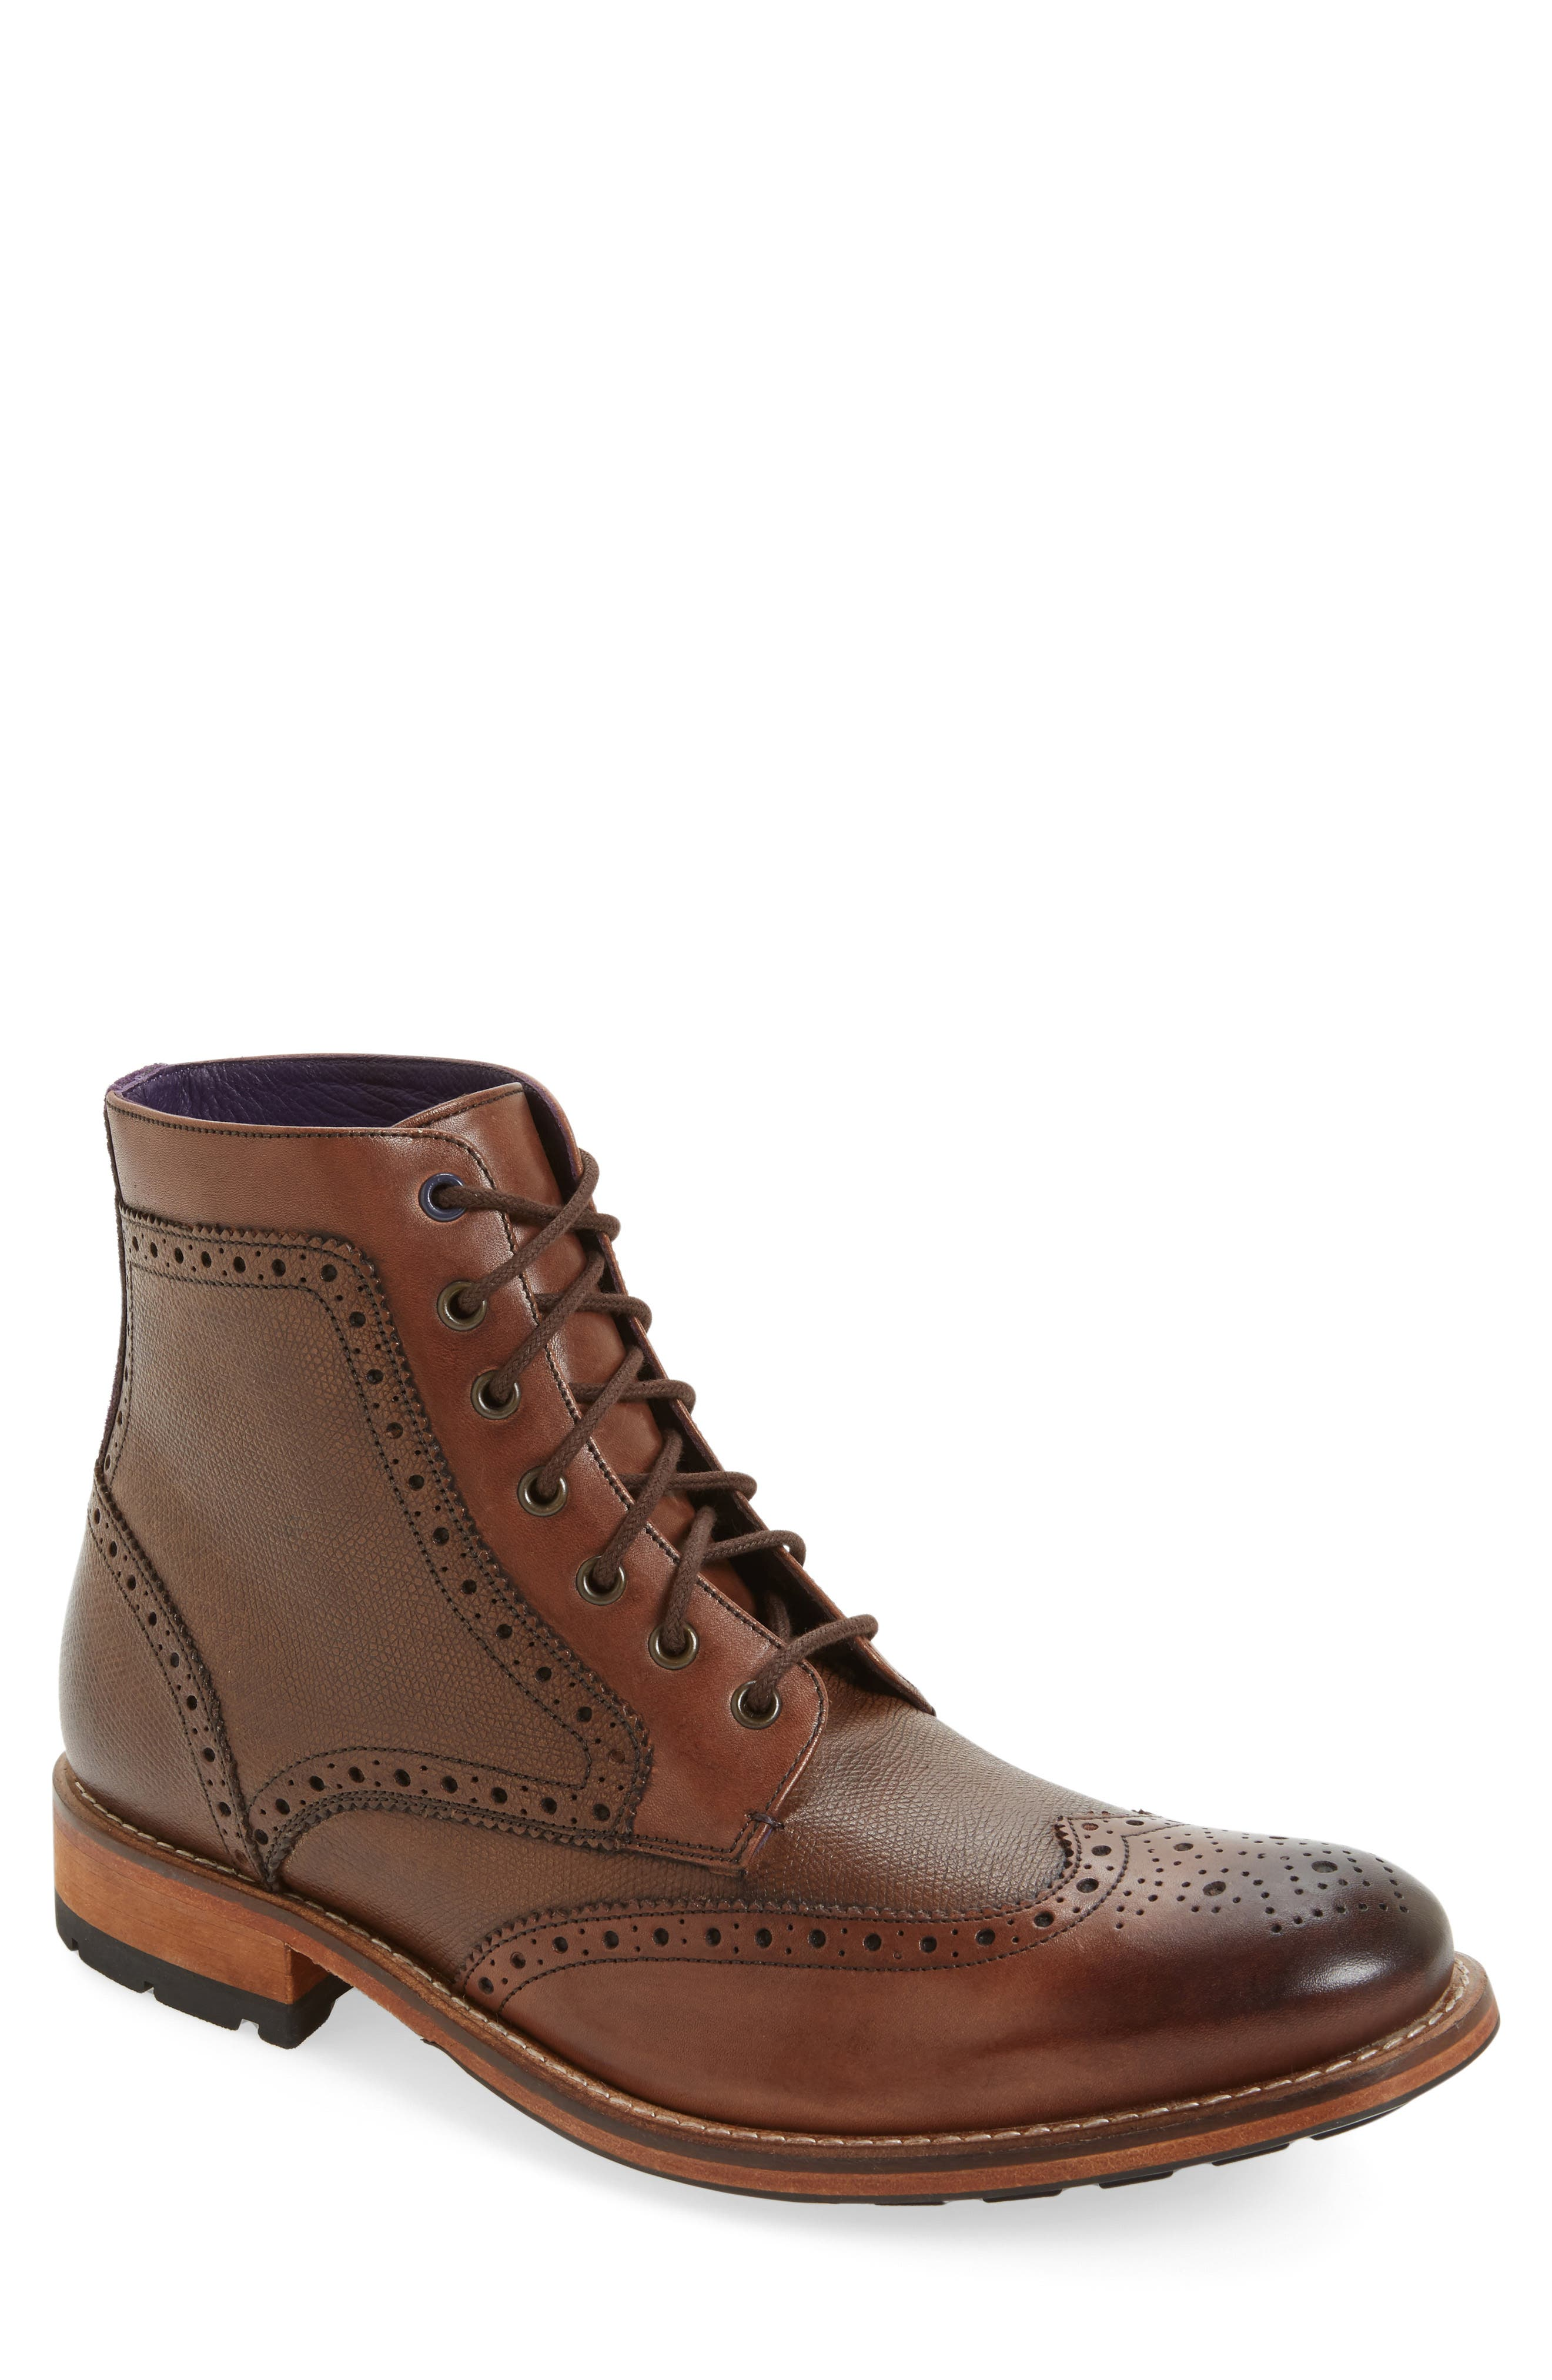 'Sealls 3' Wingtip Boot,                             Main thumbnail 1, color,                             Brown Leather